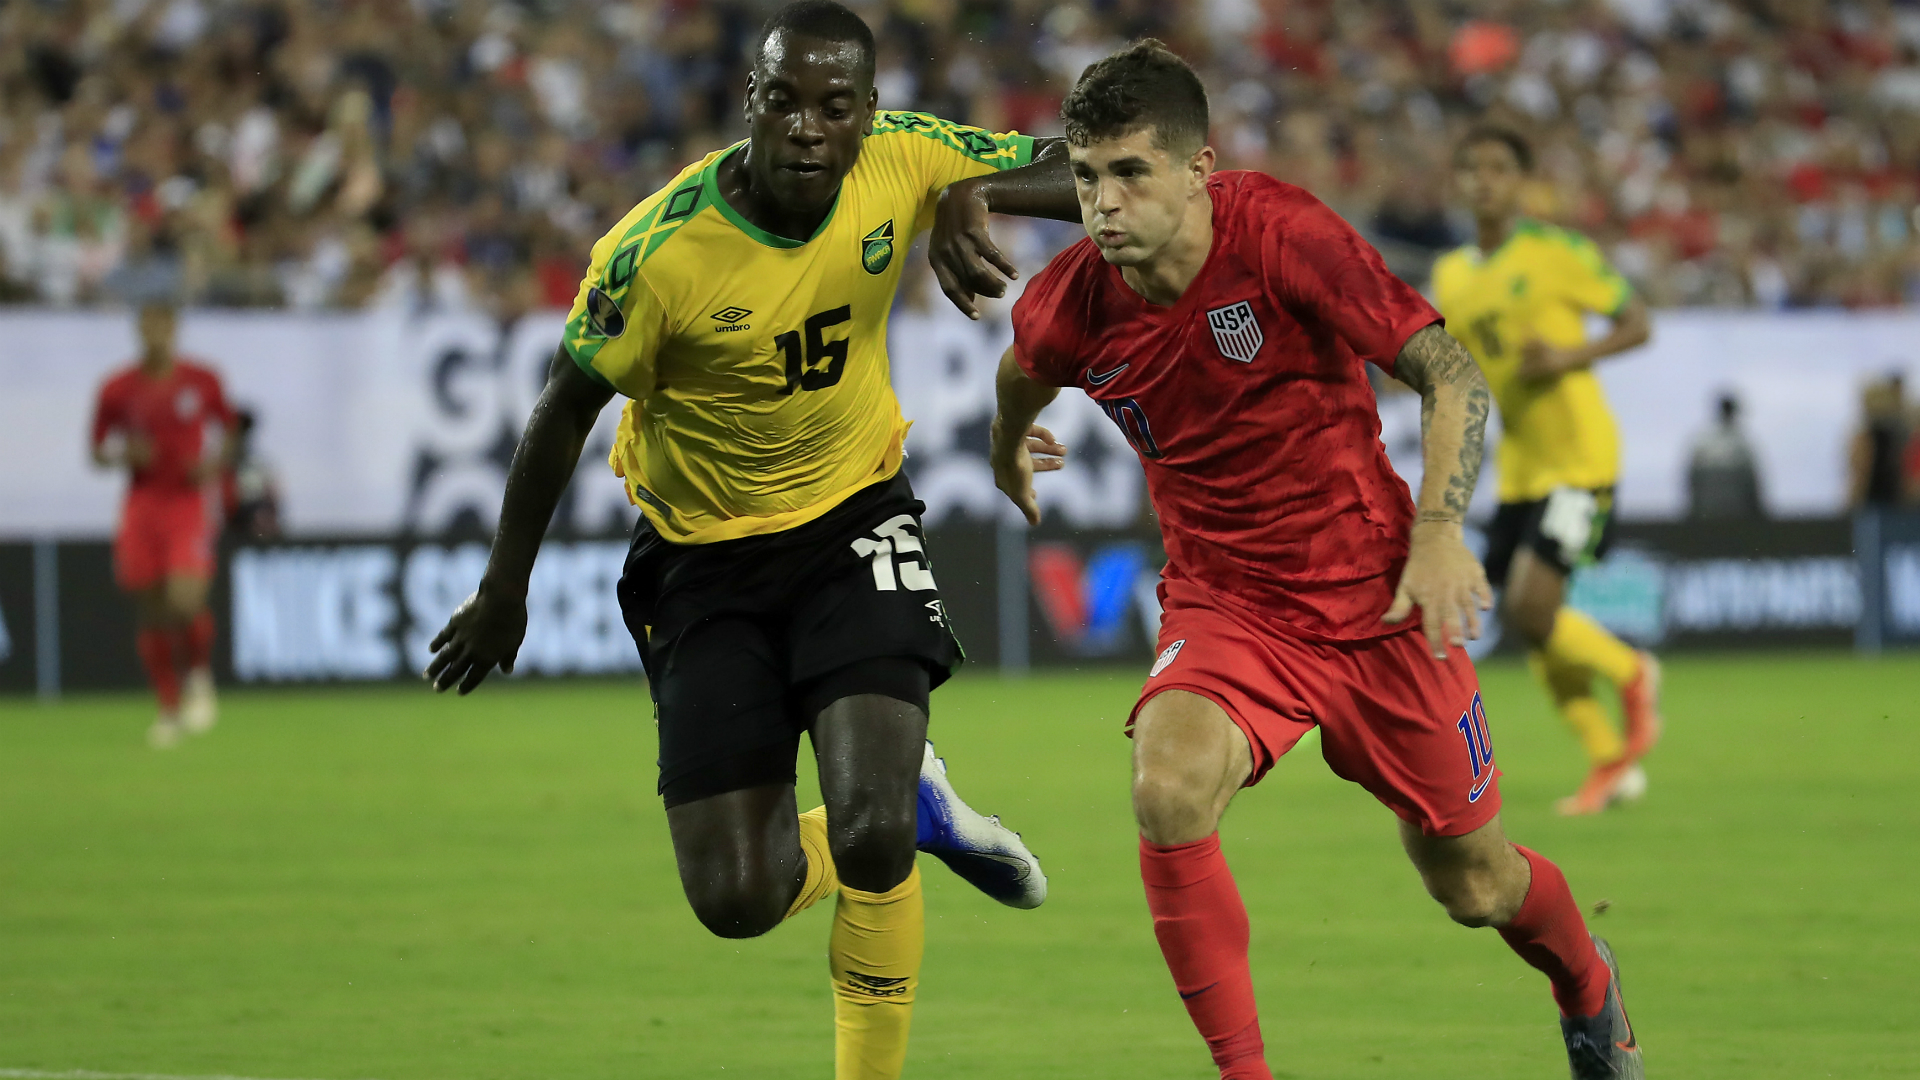 CONCACAF Gold Cup: Christian Pulisic leads United States into final against Mexico